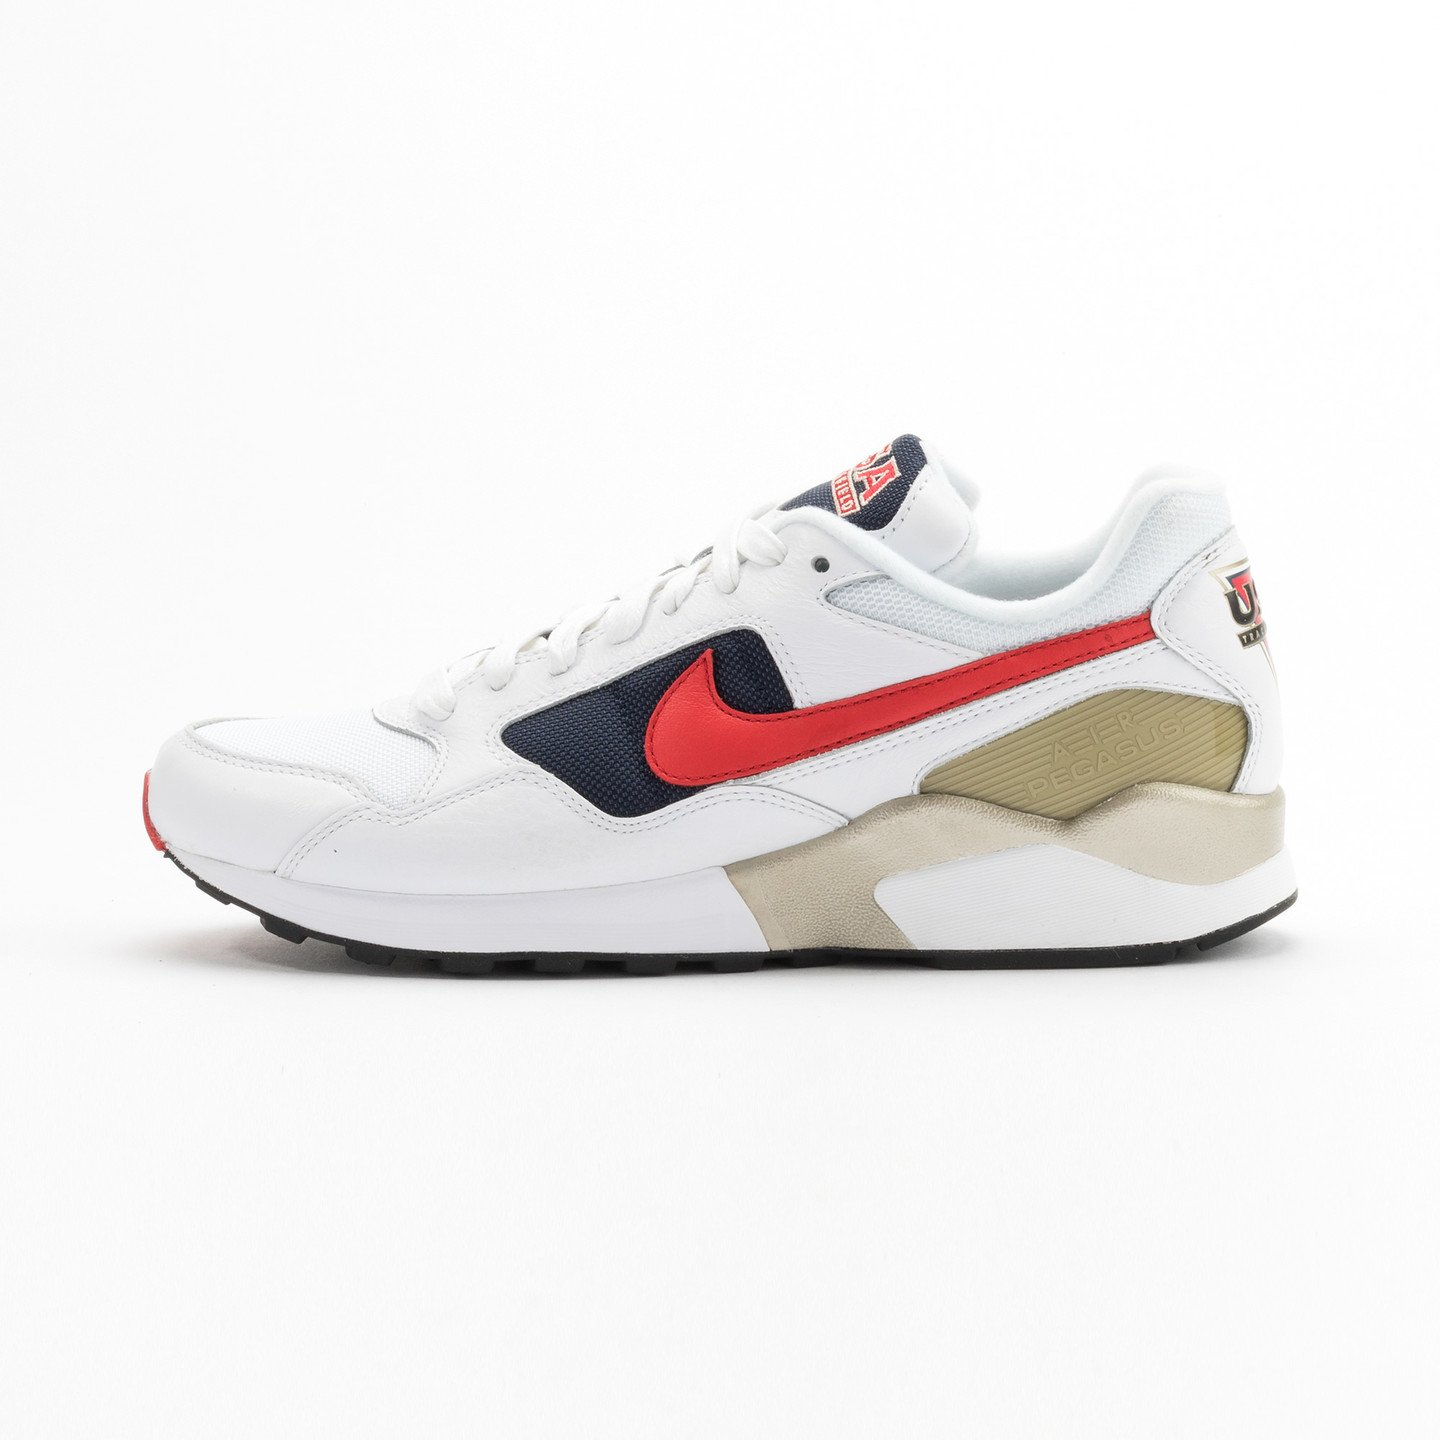 Nike Air Pegasus ´92 Premium White / University Red / Midnight Navy 844964-100-42.5